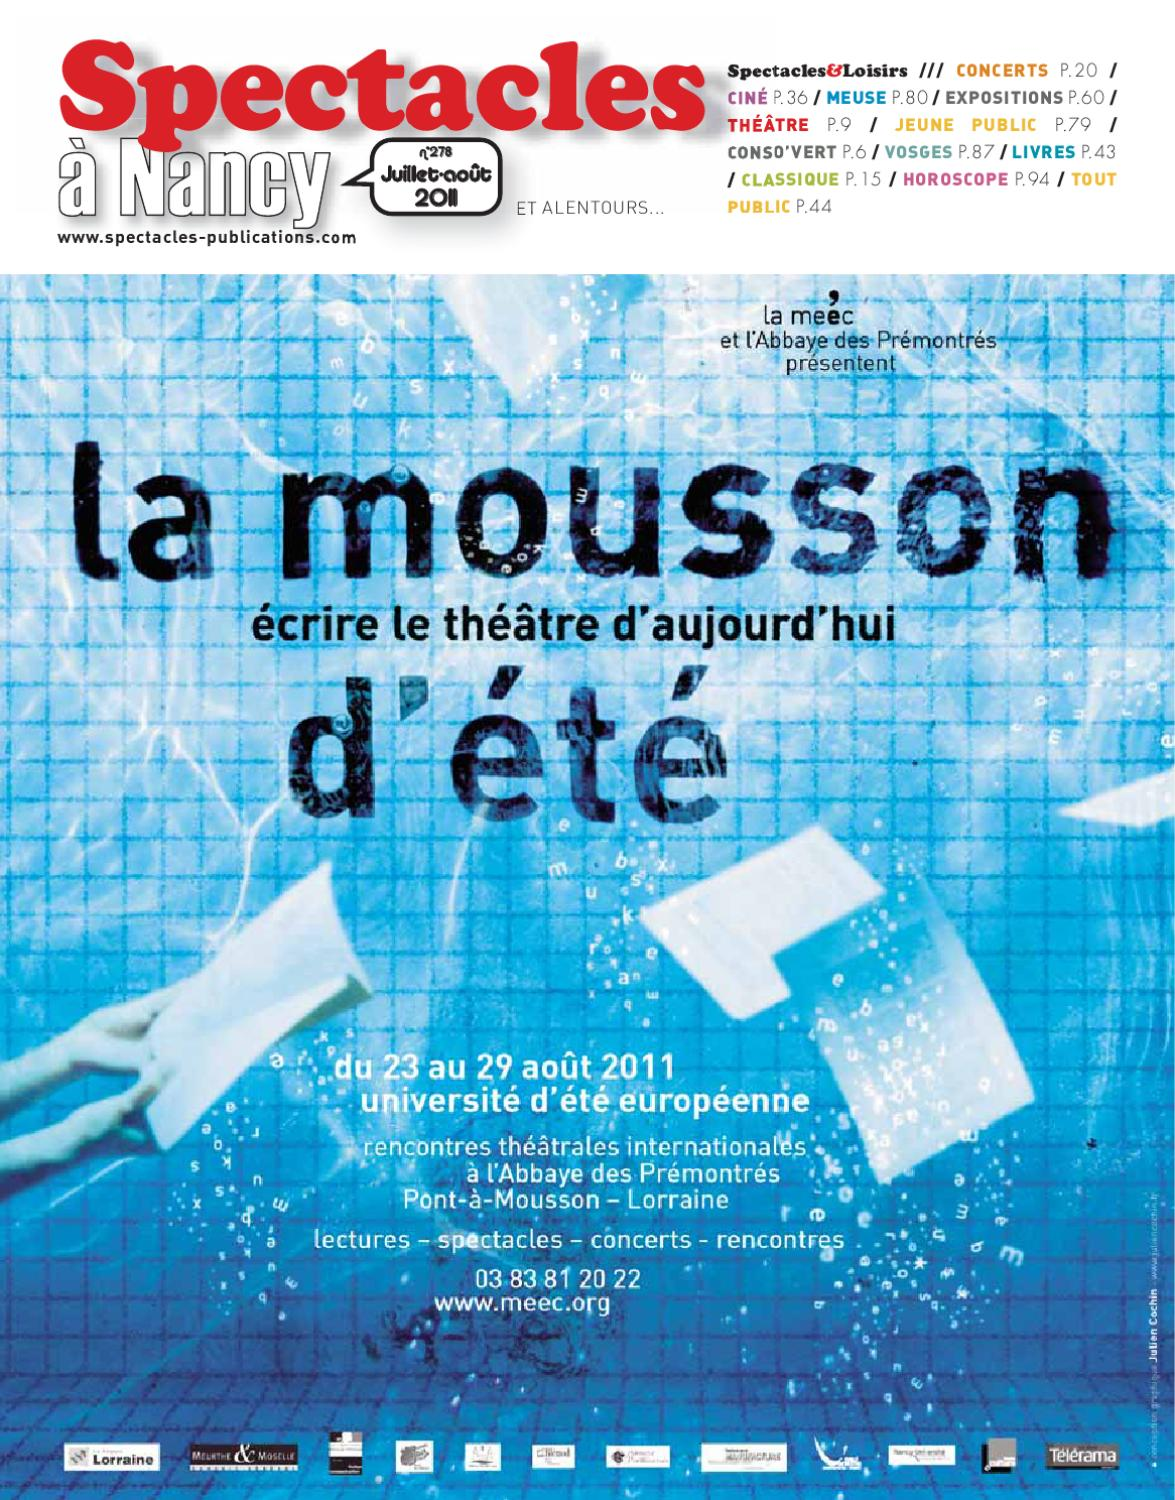 fd7b60565294a /nancy-07-2011 by SPECTACLES PUBLICATIONS - issuu